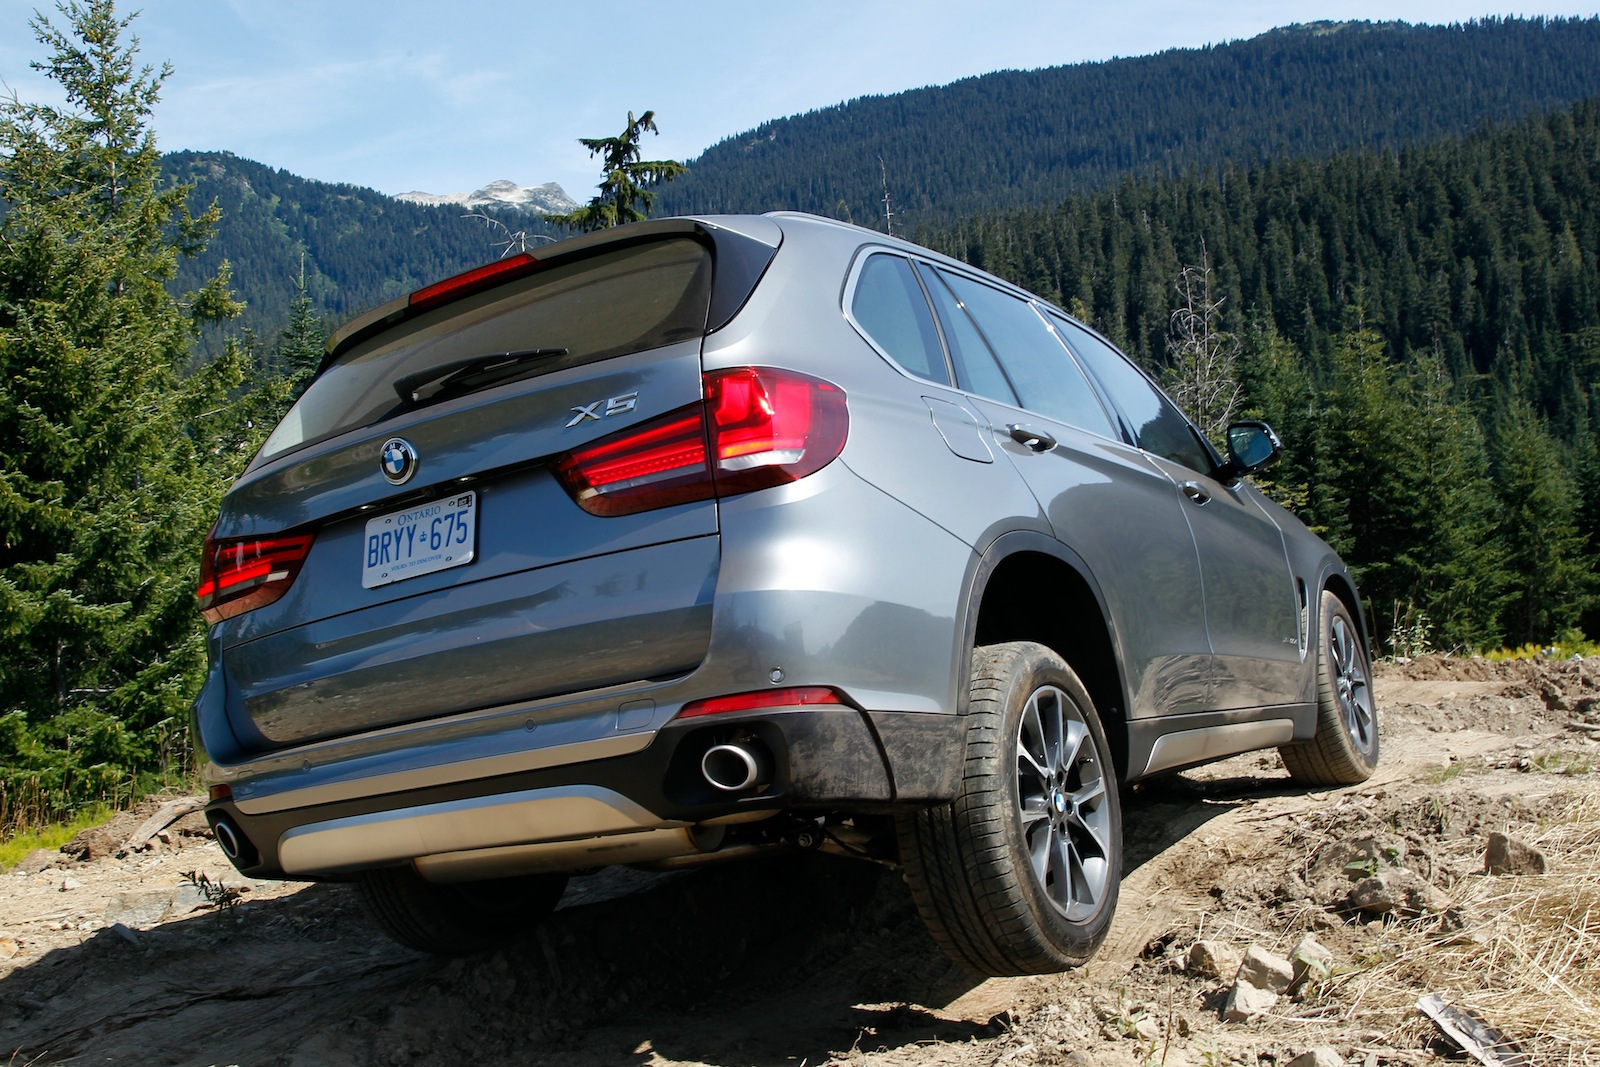 BMW X Pricing And Specifications Photos Of - 2014 bmw x5 msrp